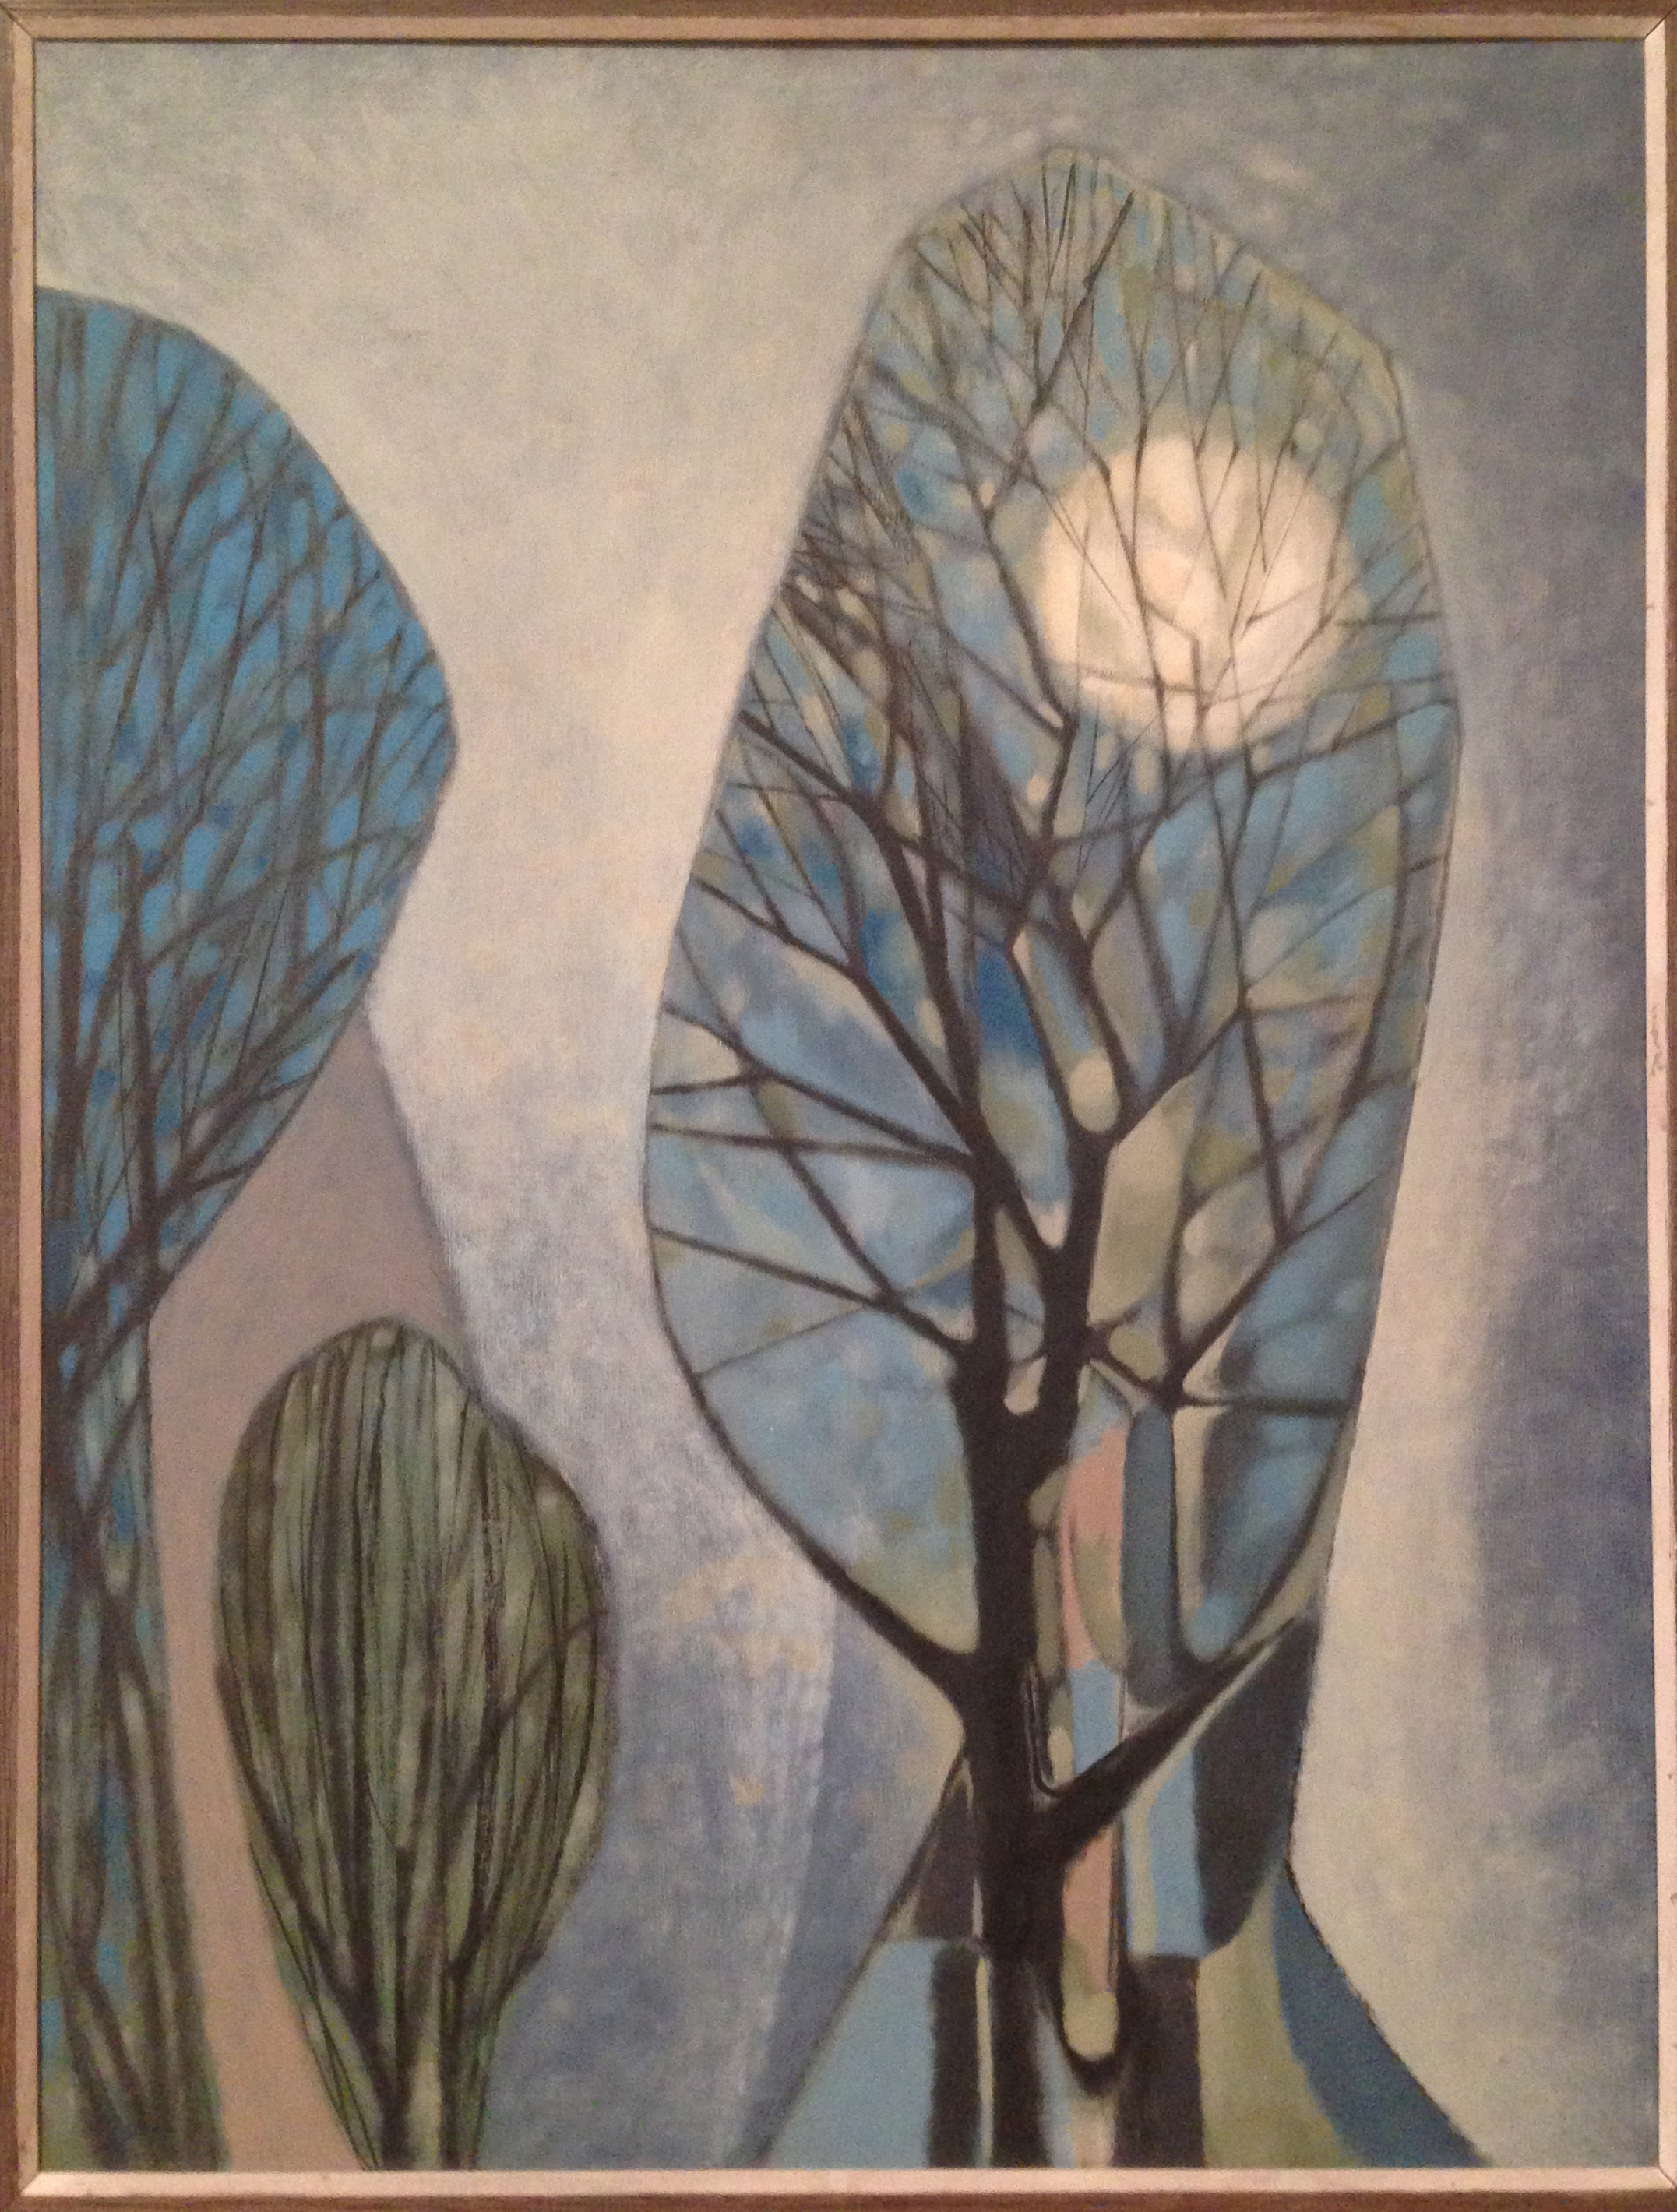 Moon Through a Winter Tree, 1957, by George Grammer. Collection of the San Antonio Art League Museum